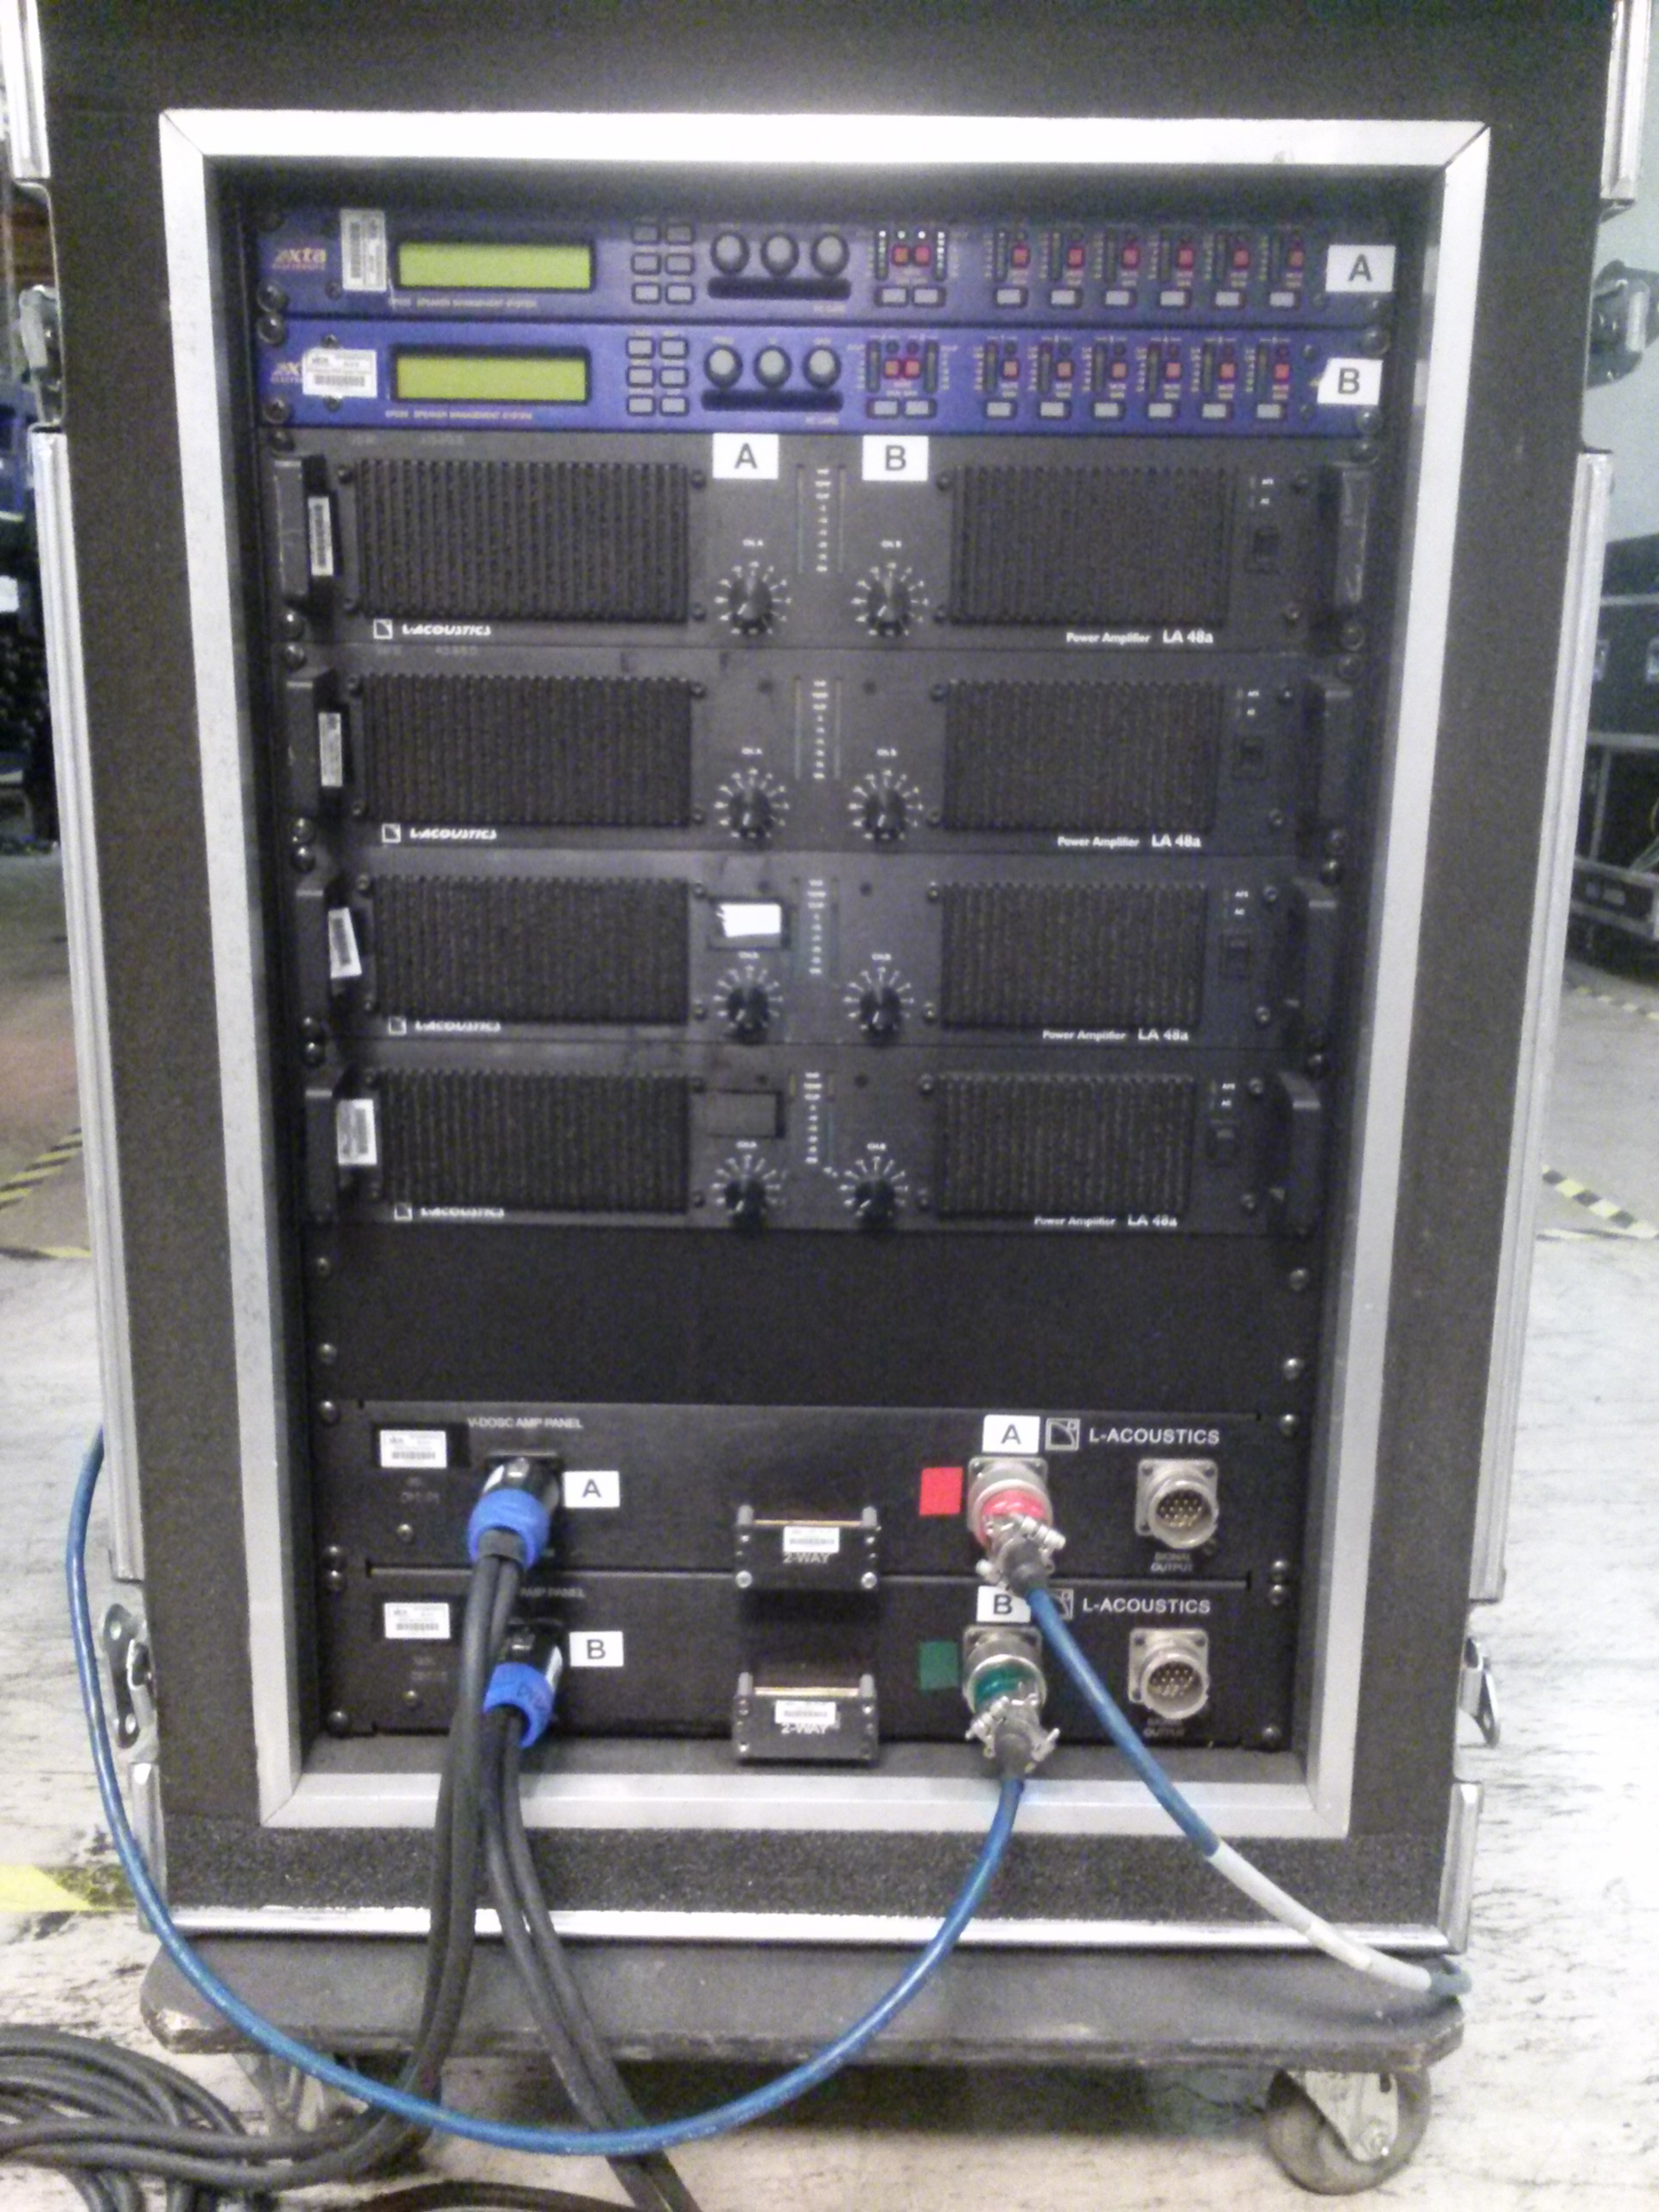 mount rack shock store amp osp ata racks protect space transport